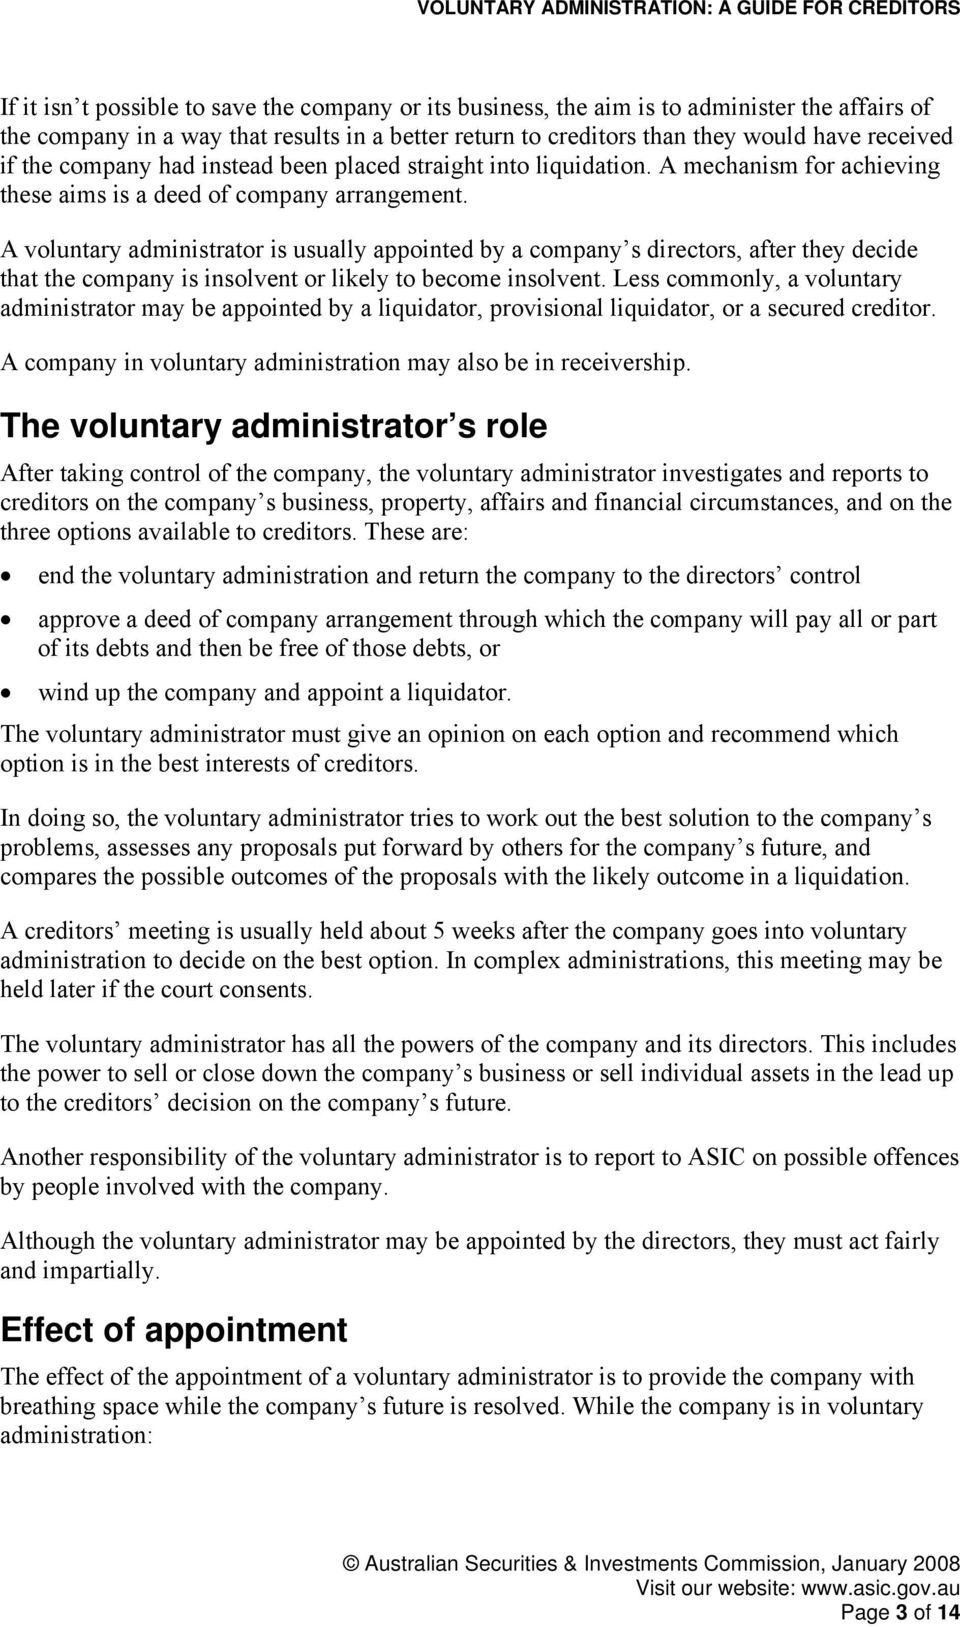 A voluntary administrator is usually appointed by a company s directors, after they decide that the company is insolvent or likely to become insolvent.